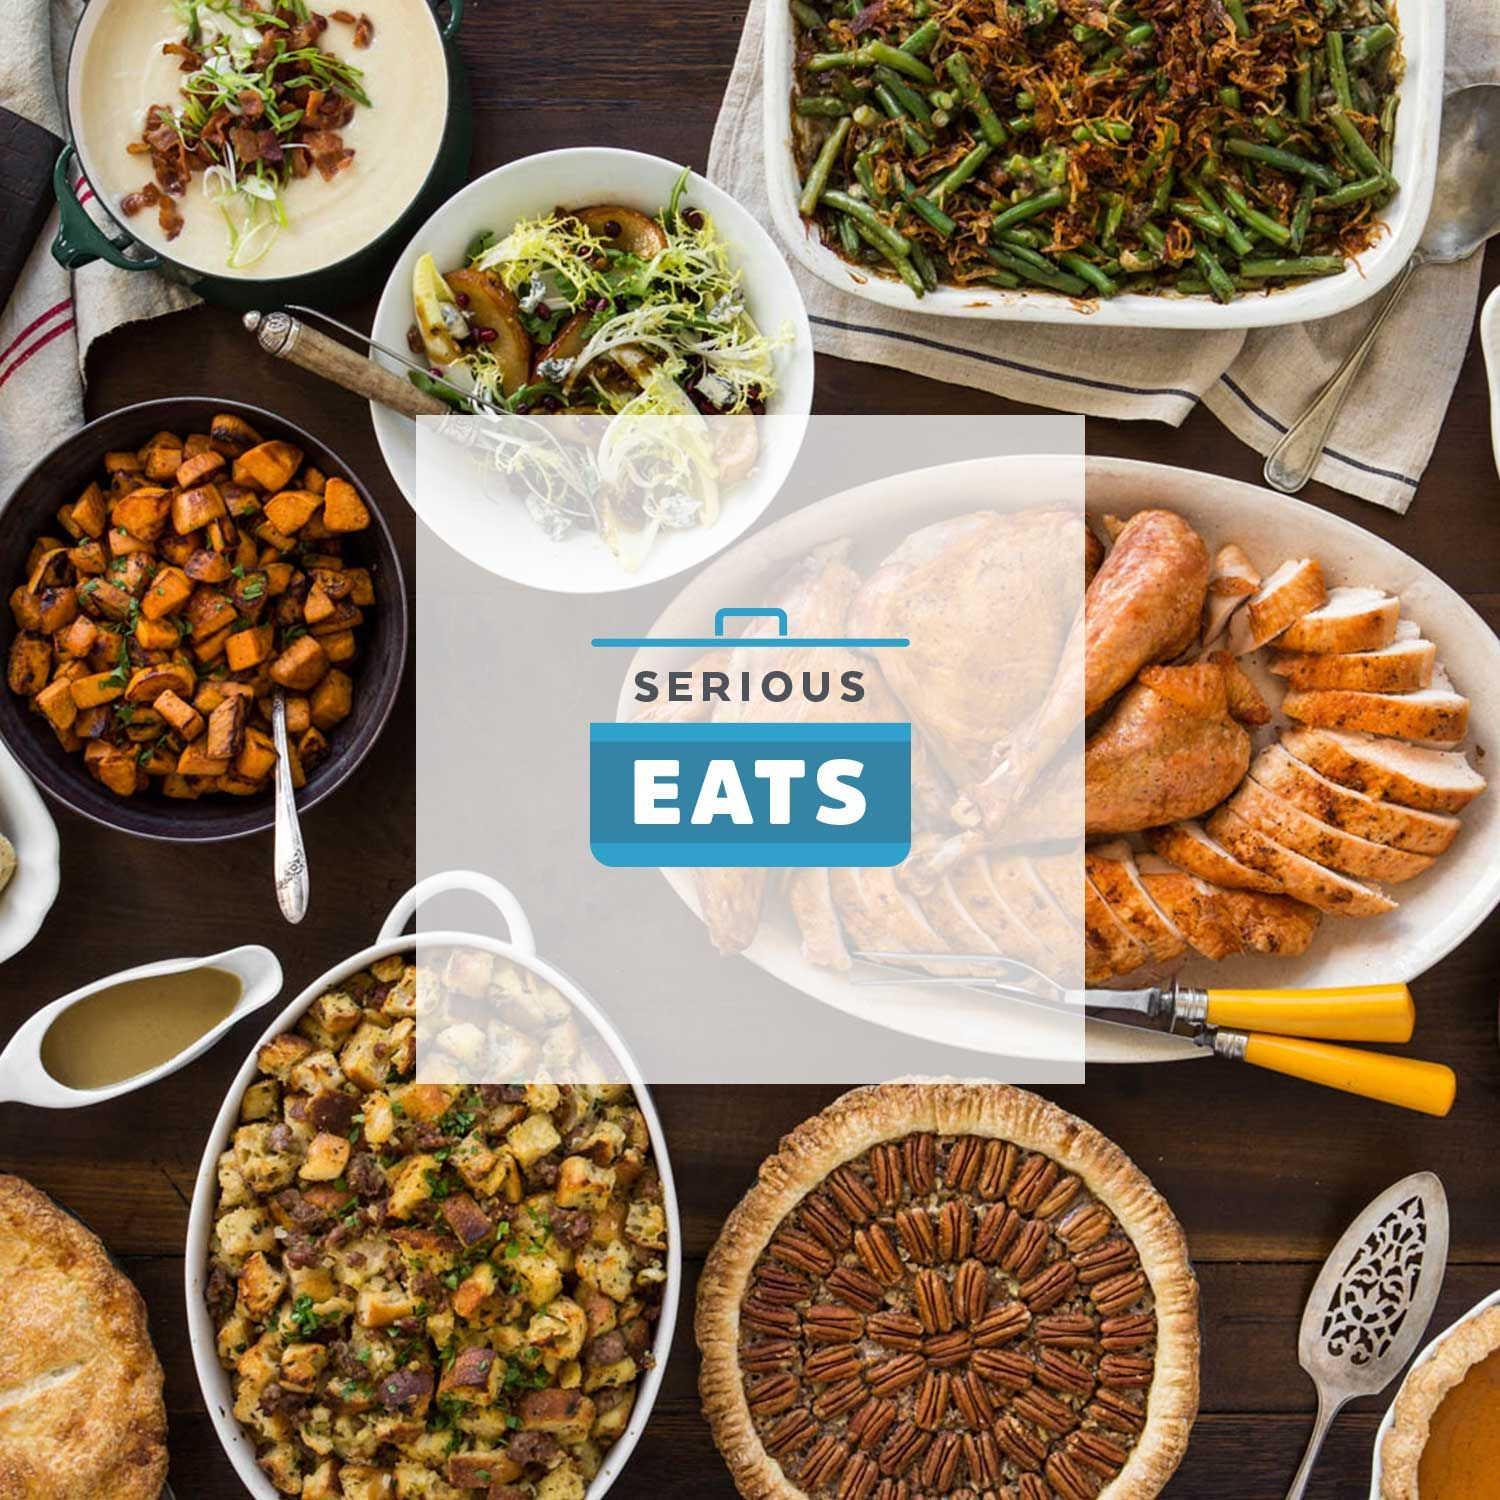 Serious eats is the destination for delicious food with definitive serious eats is the destination for delicious food with definitive recipes trailblazing science and essential guides to eating and knowing all about the forumfinder Images